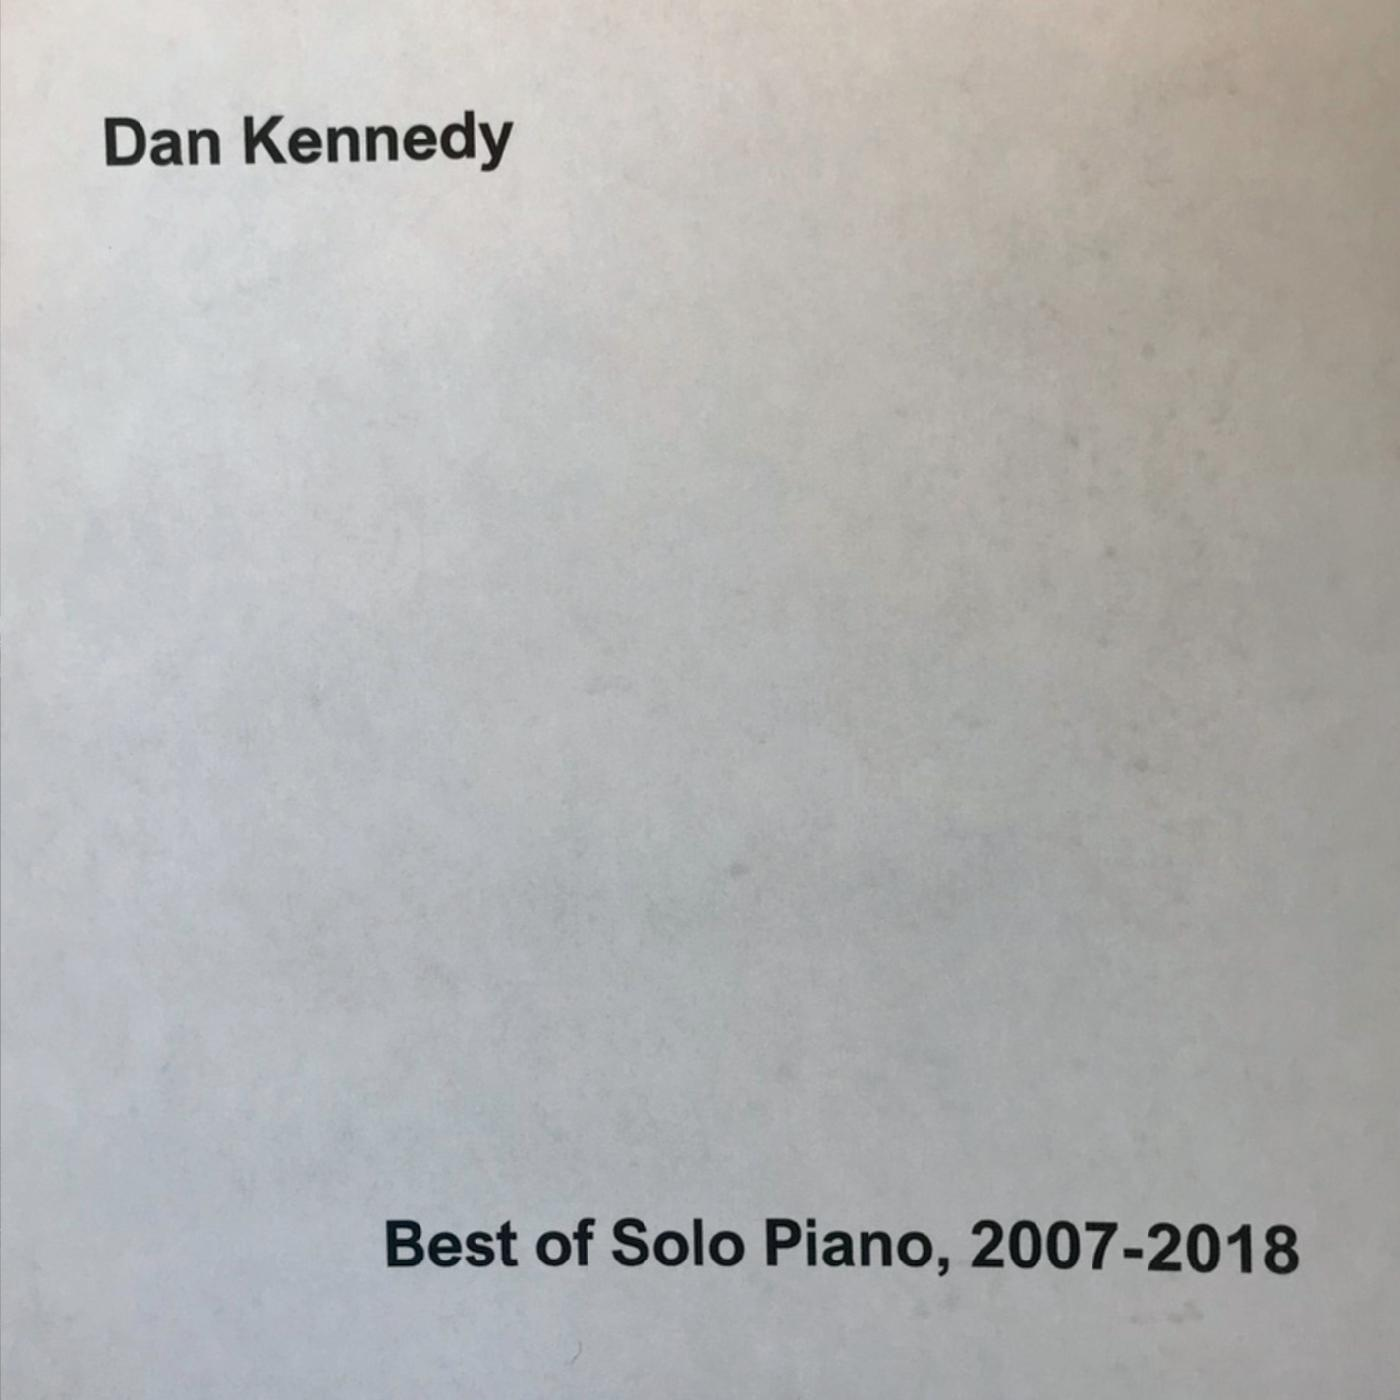 Dan Kennedy - Best of Solo Piano, 2007-2018